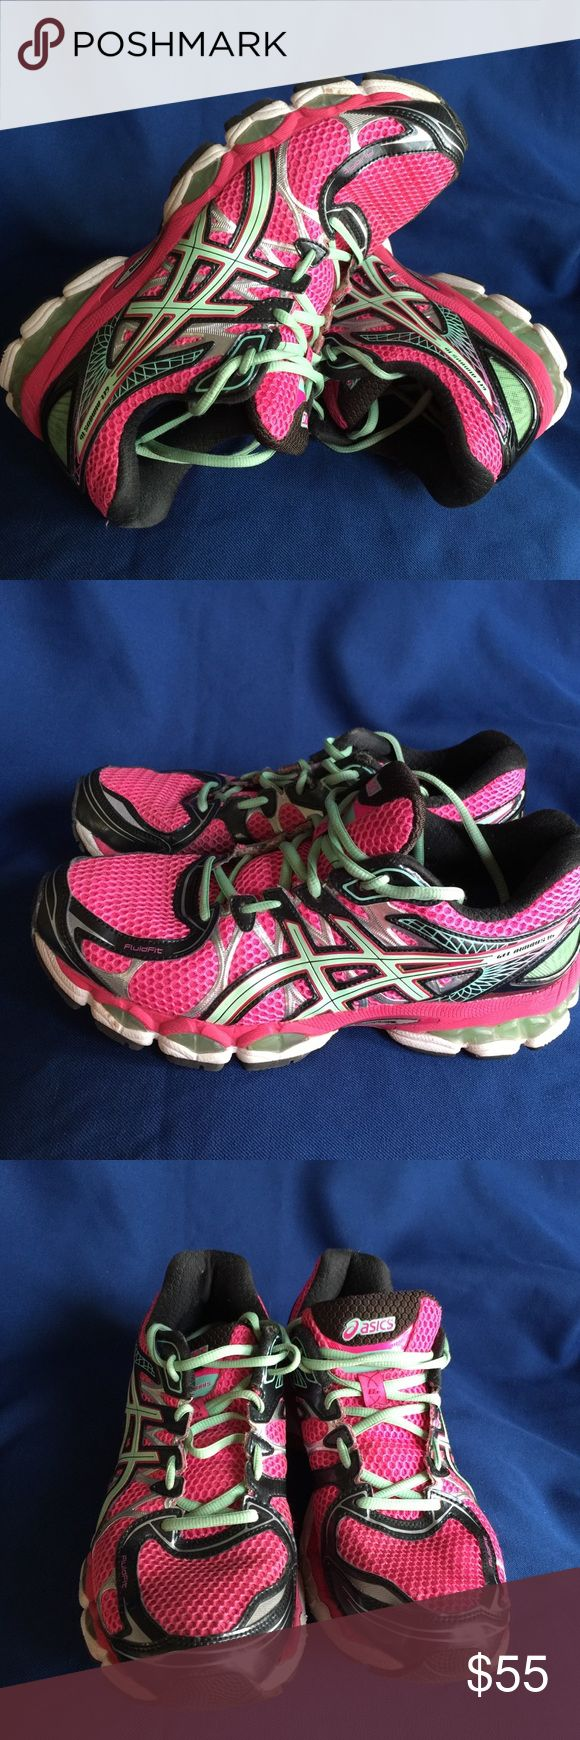 Women's Asics Gel Nimbus 16 size 9,5 Gently used Asics Shoes Sneakers